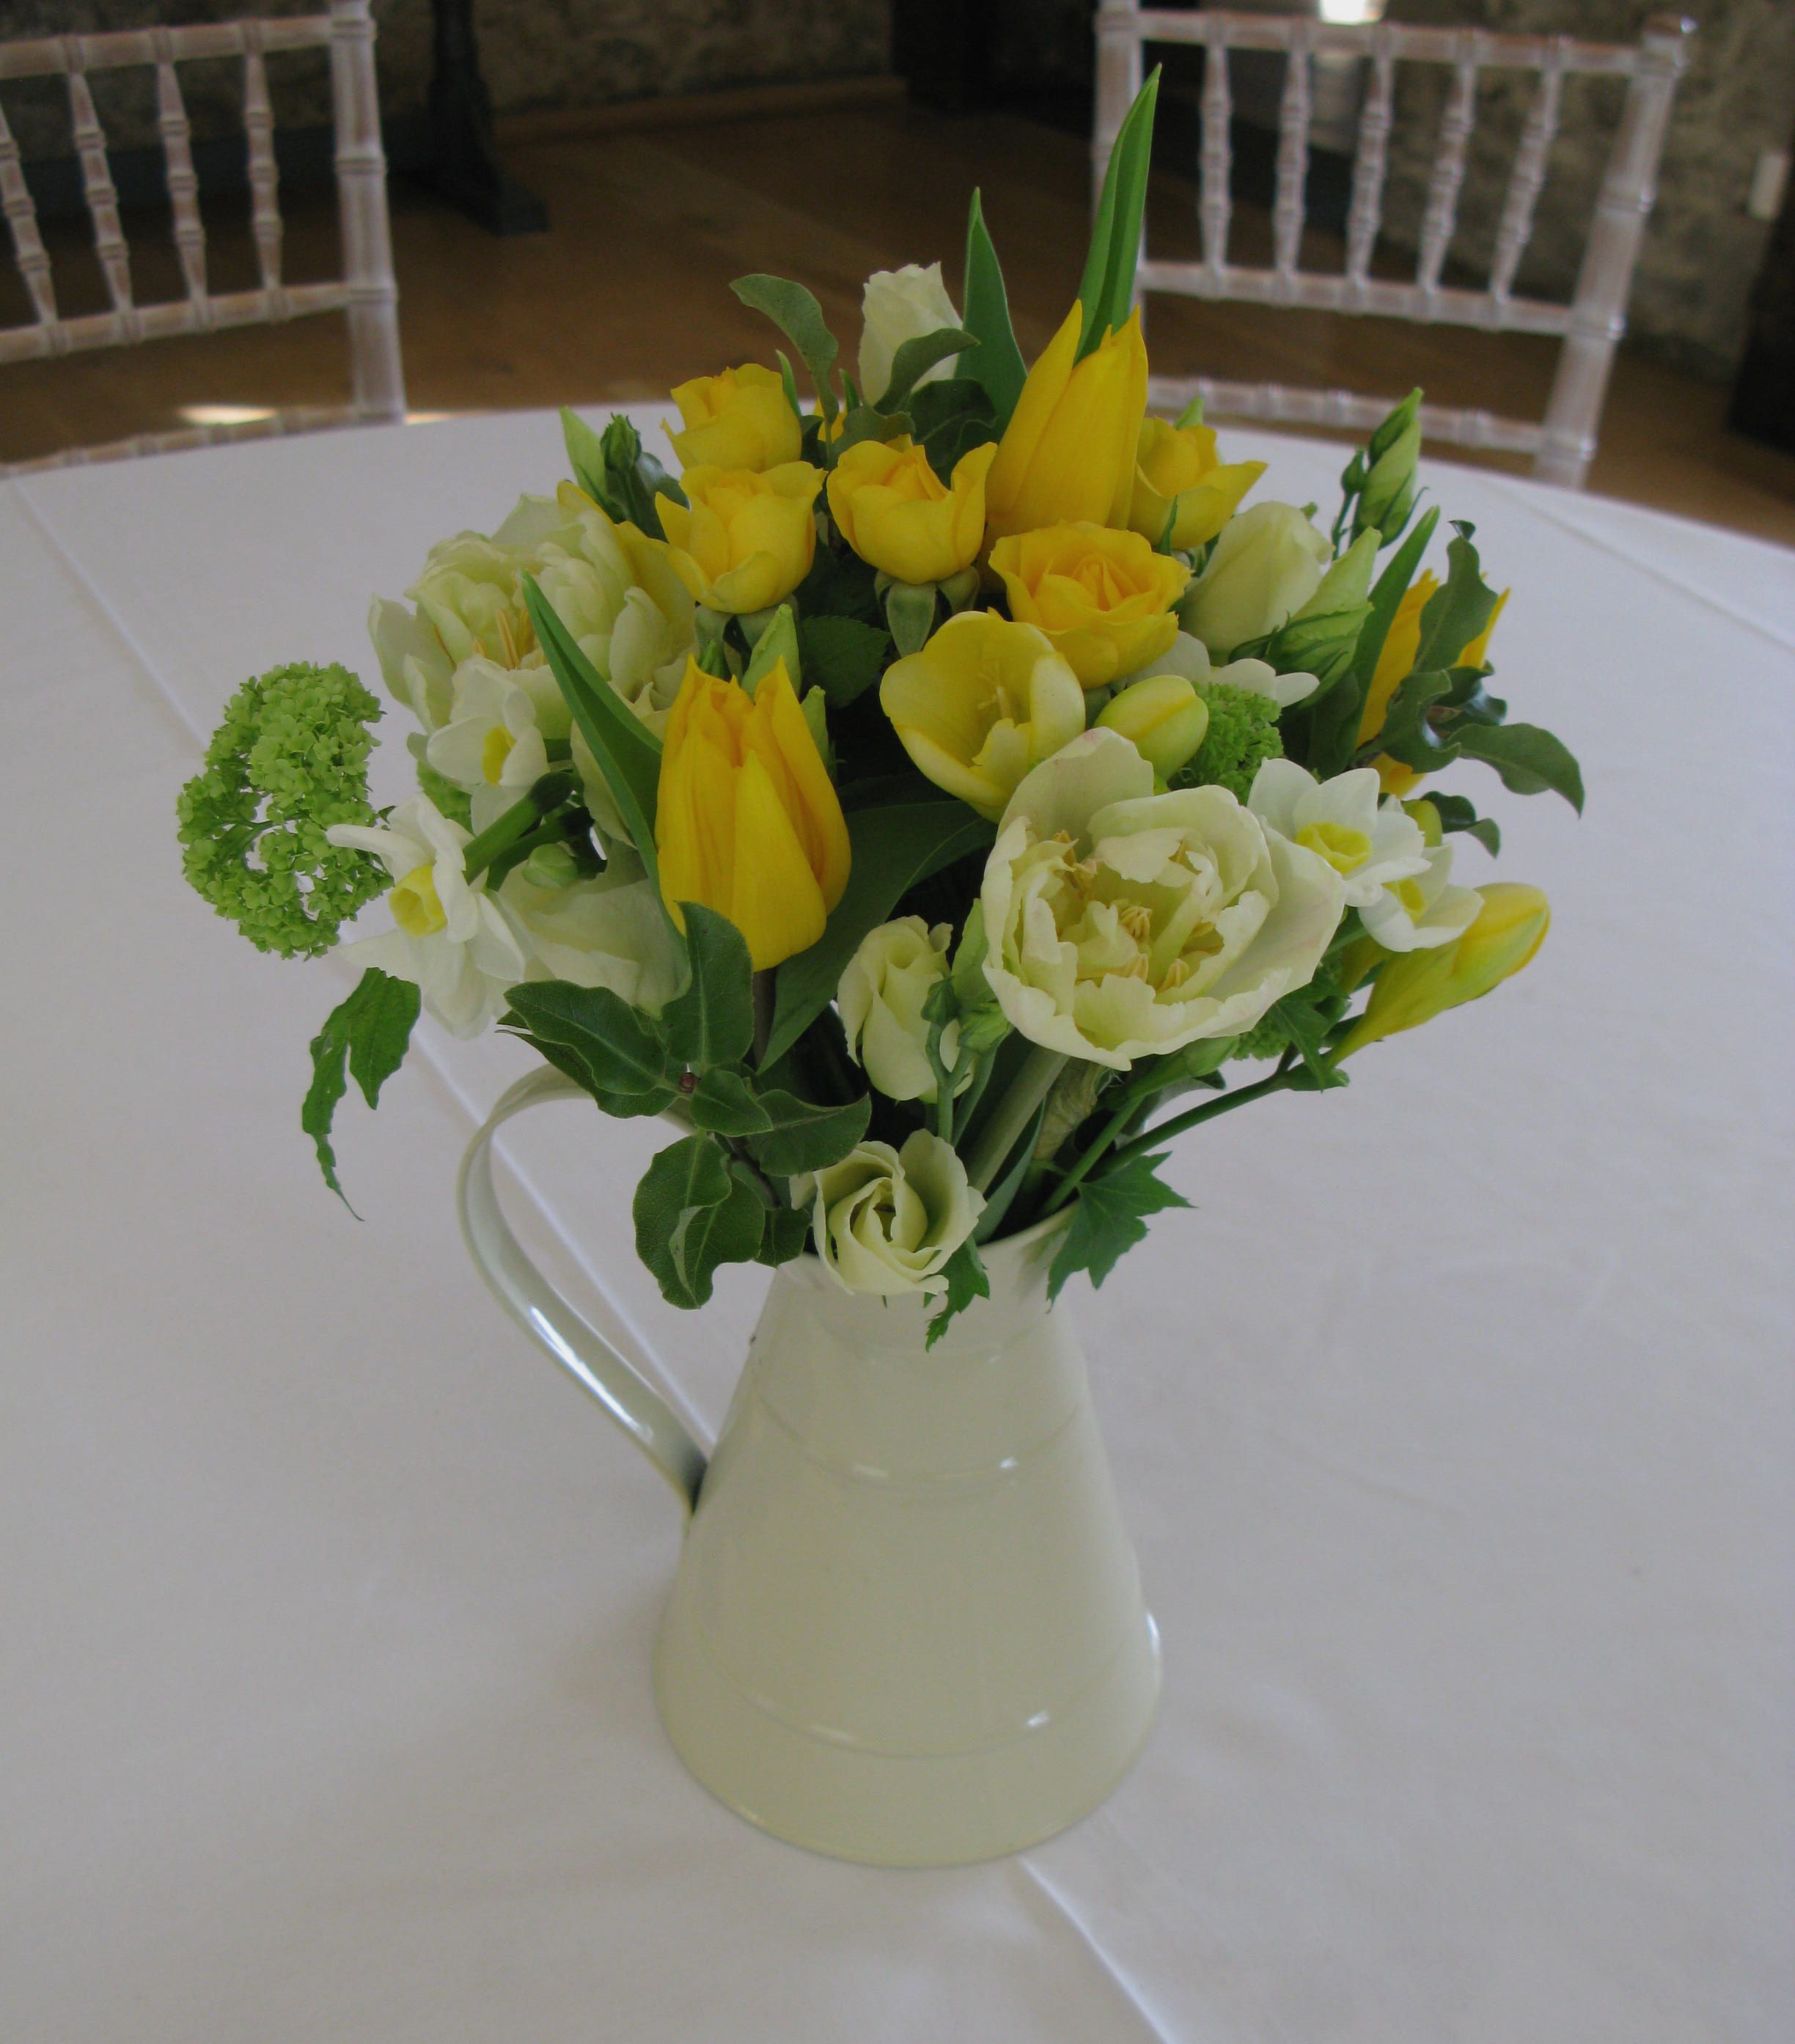 Galvanised Flower Vase Of Mini Cream Jugs Make Simple Decorations the Jugs Can Be Hired Pertaining to Mini Cream Jugs Make Simple Decorations the Jugs Can Be Hired